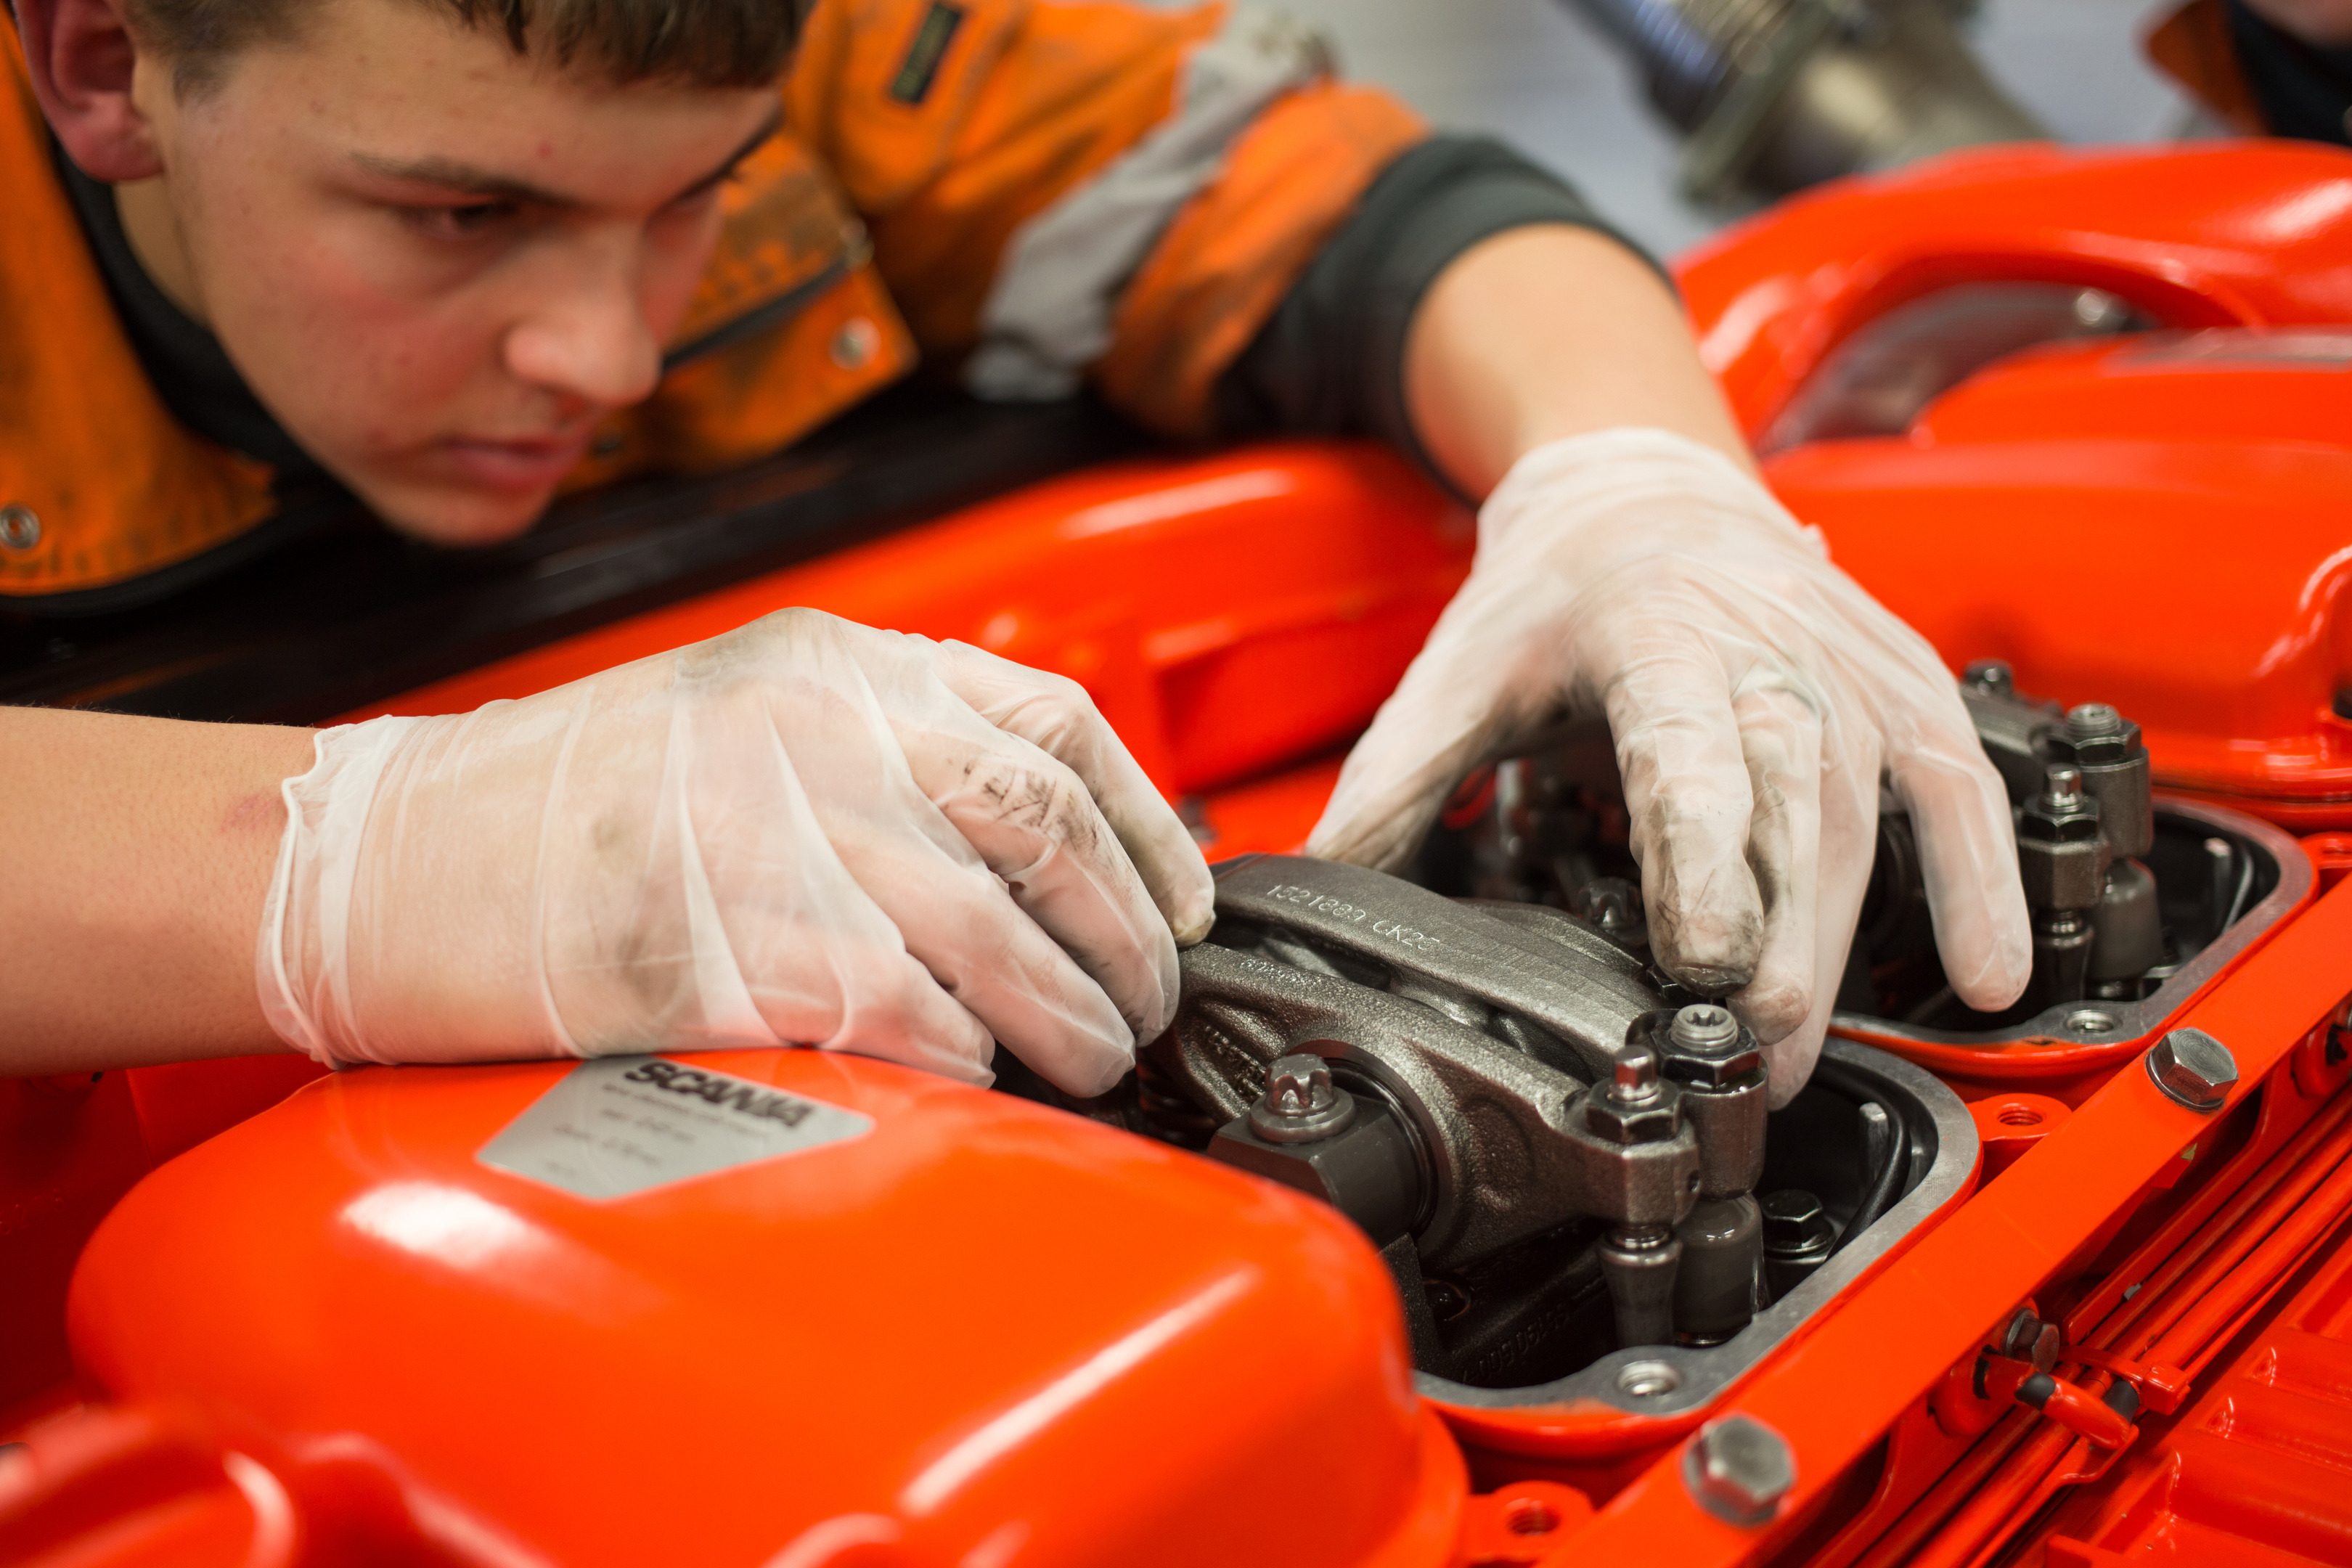 A RNLI apprentice mends an engine at the charity's workshop in Poole